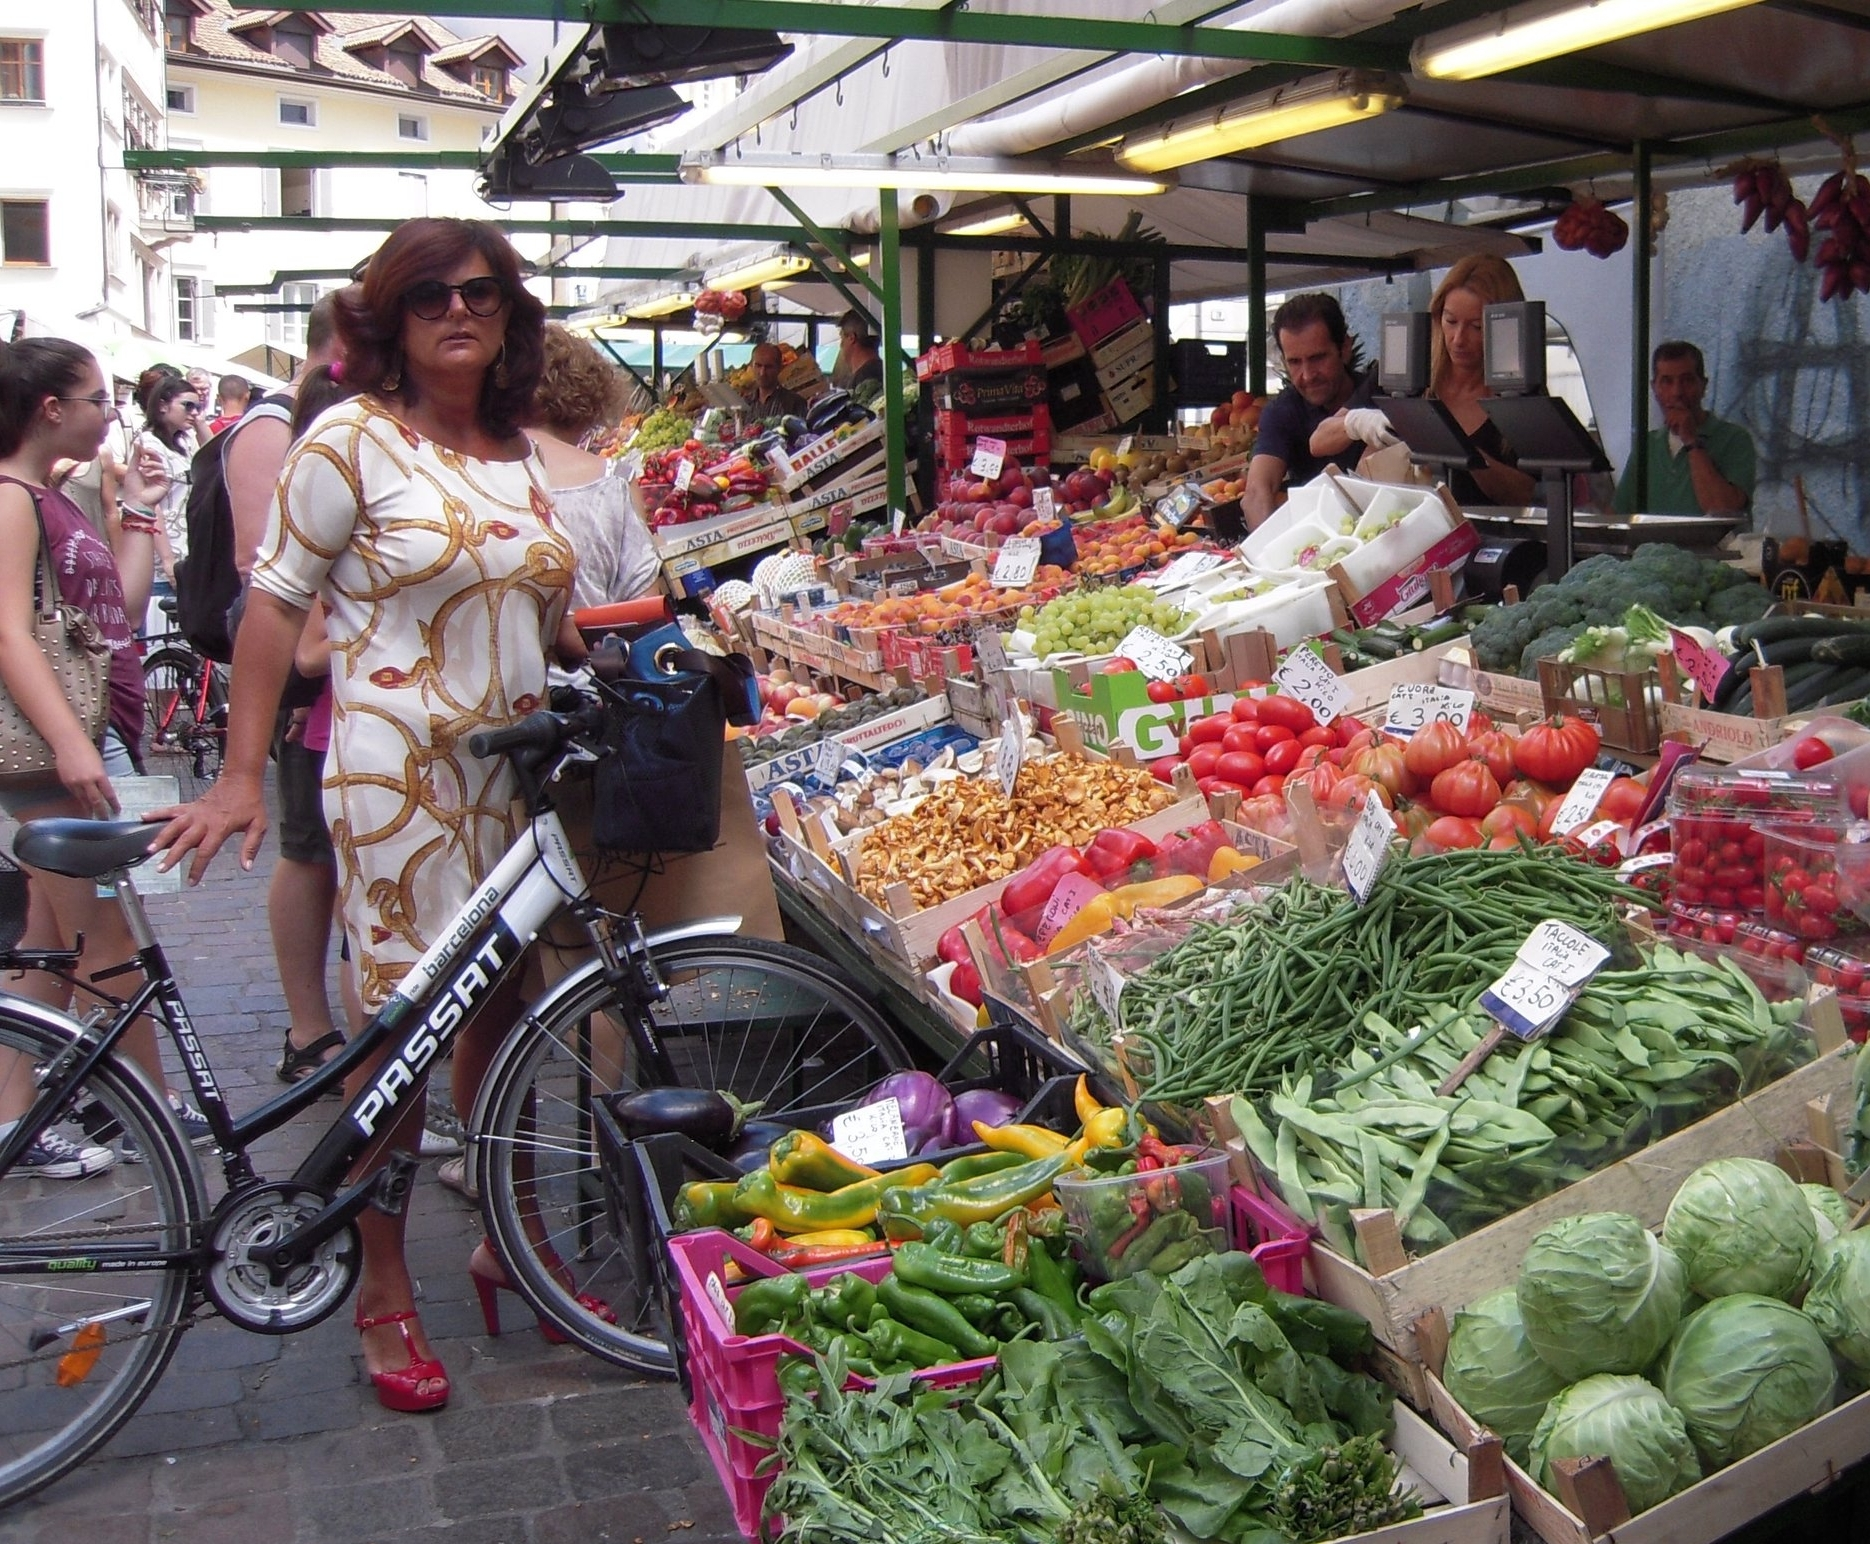 A silk dress and high heels were no deterrent for this woman to ride to market in northern Italy. Photo by Nicole Eikenberry